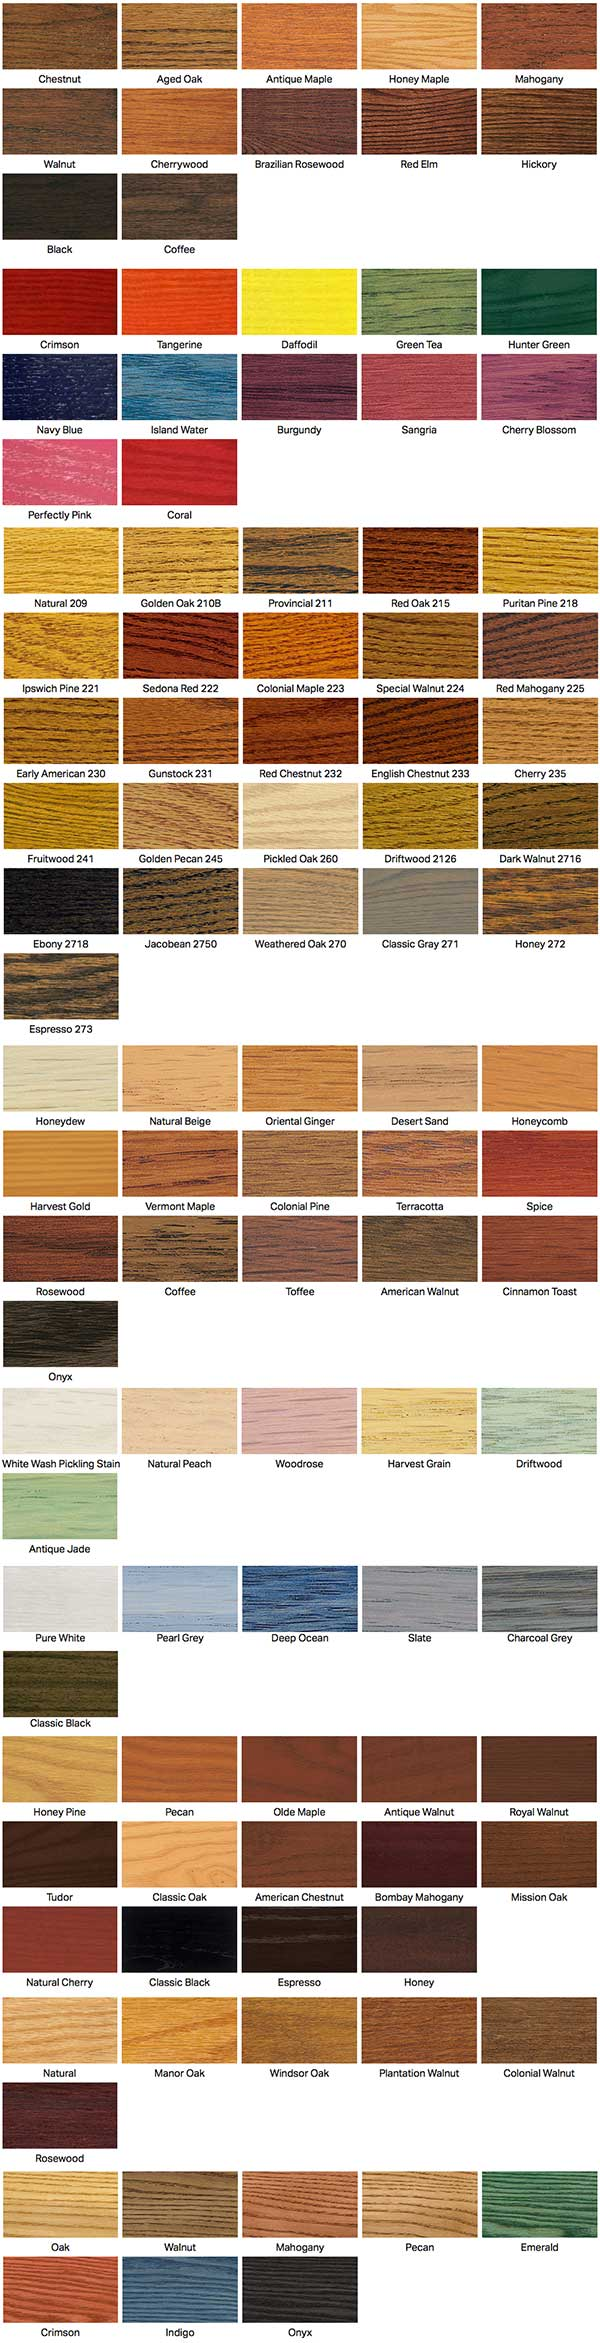 Wood Floor Stain Colors From Minwax By Indianapolis Hardwood Service